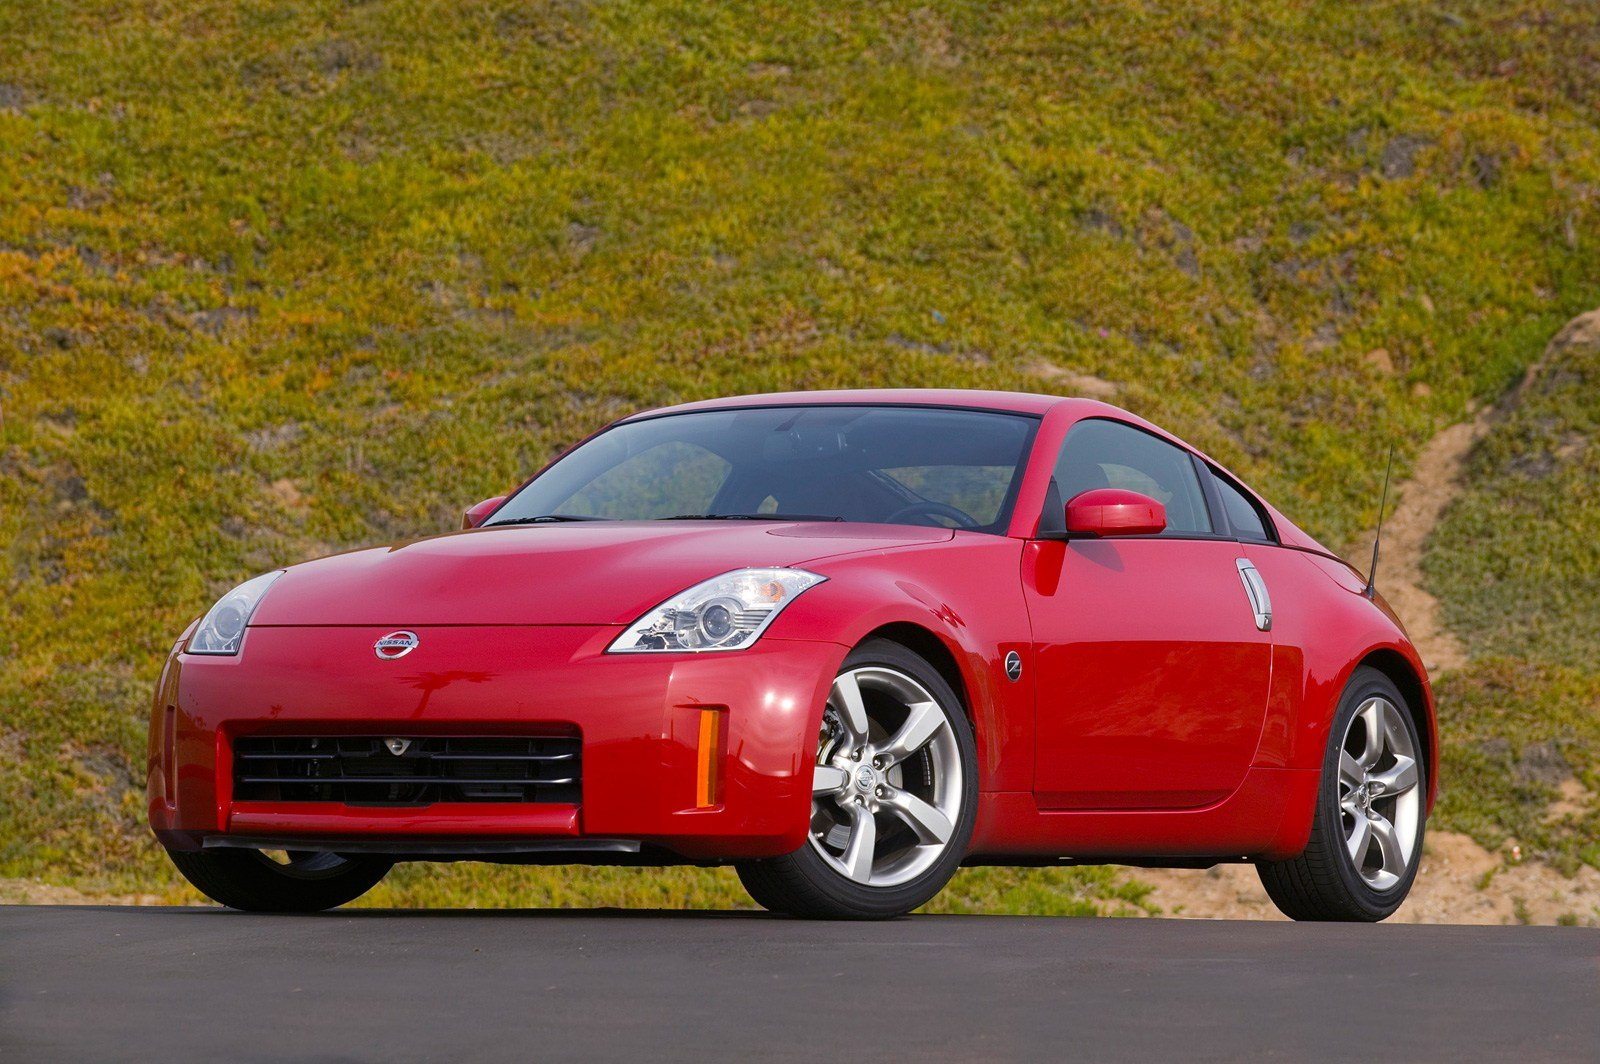 Top 10 Best Used Sports Cars Under $10K \u00bb AutoGuide.com News